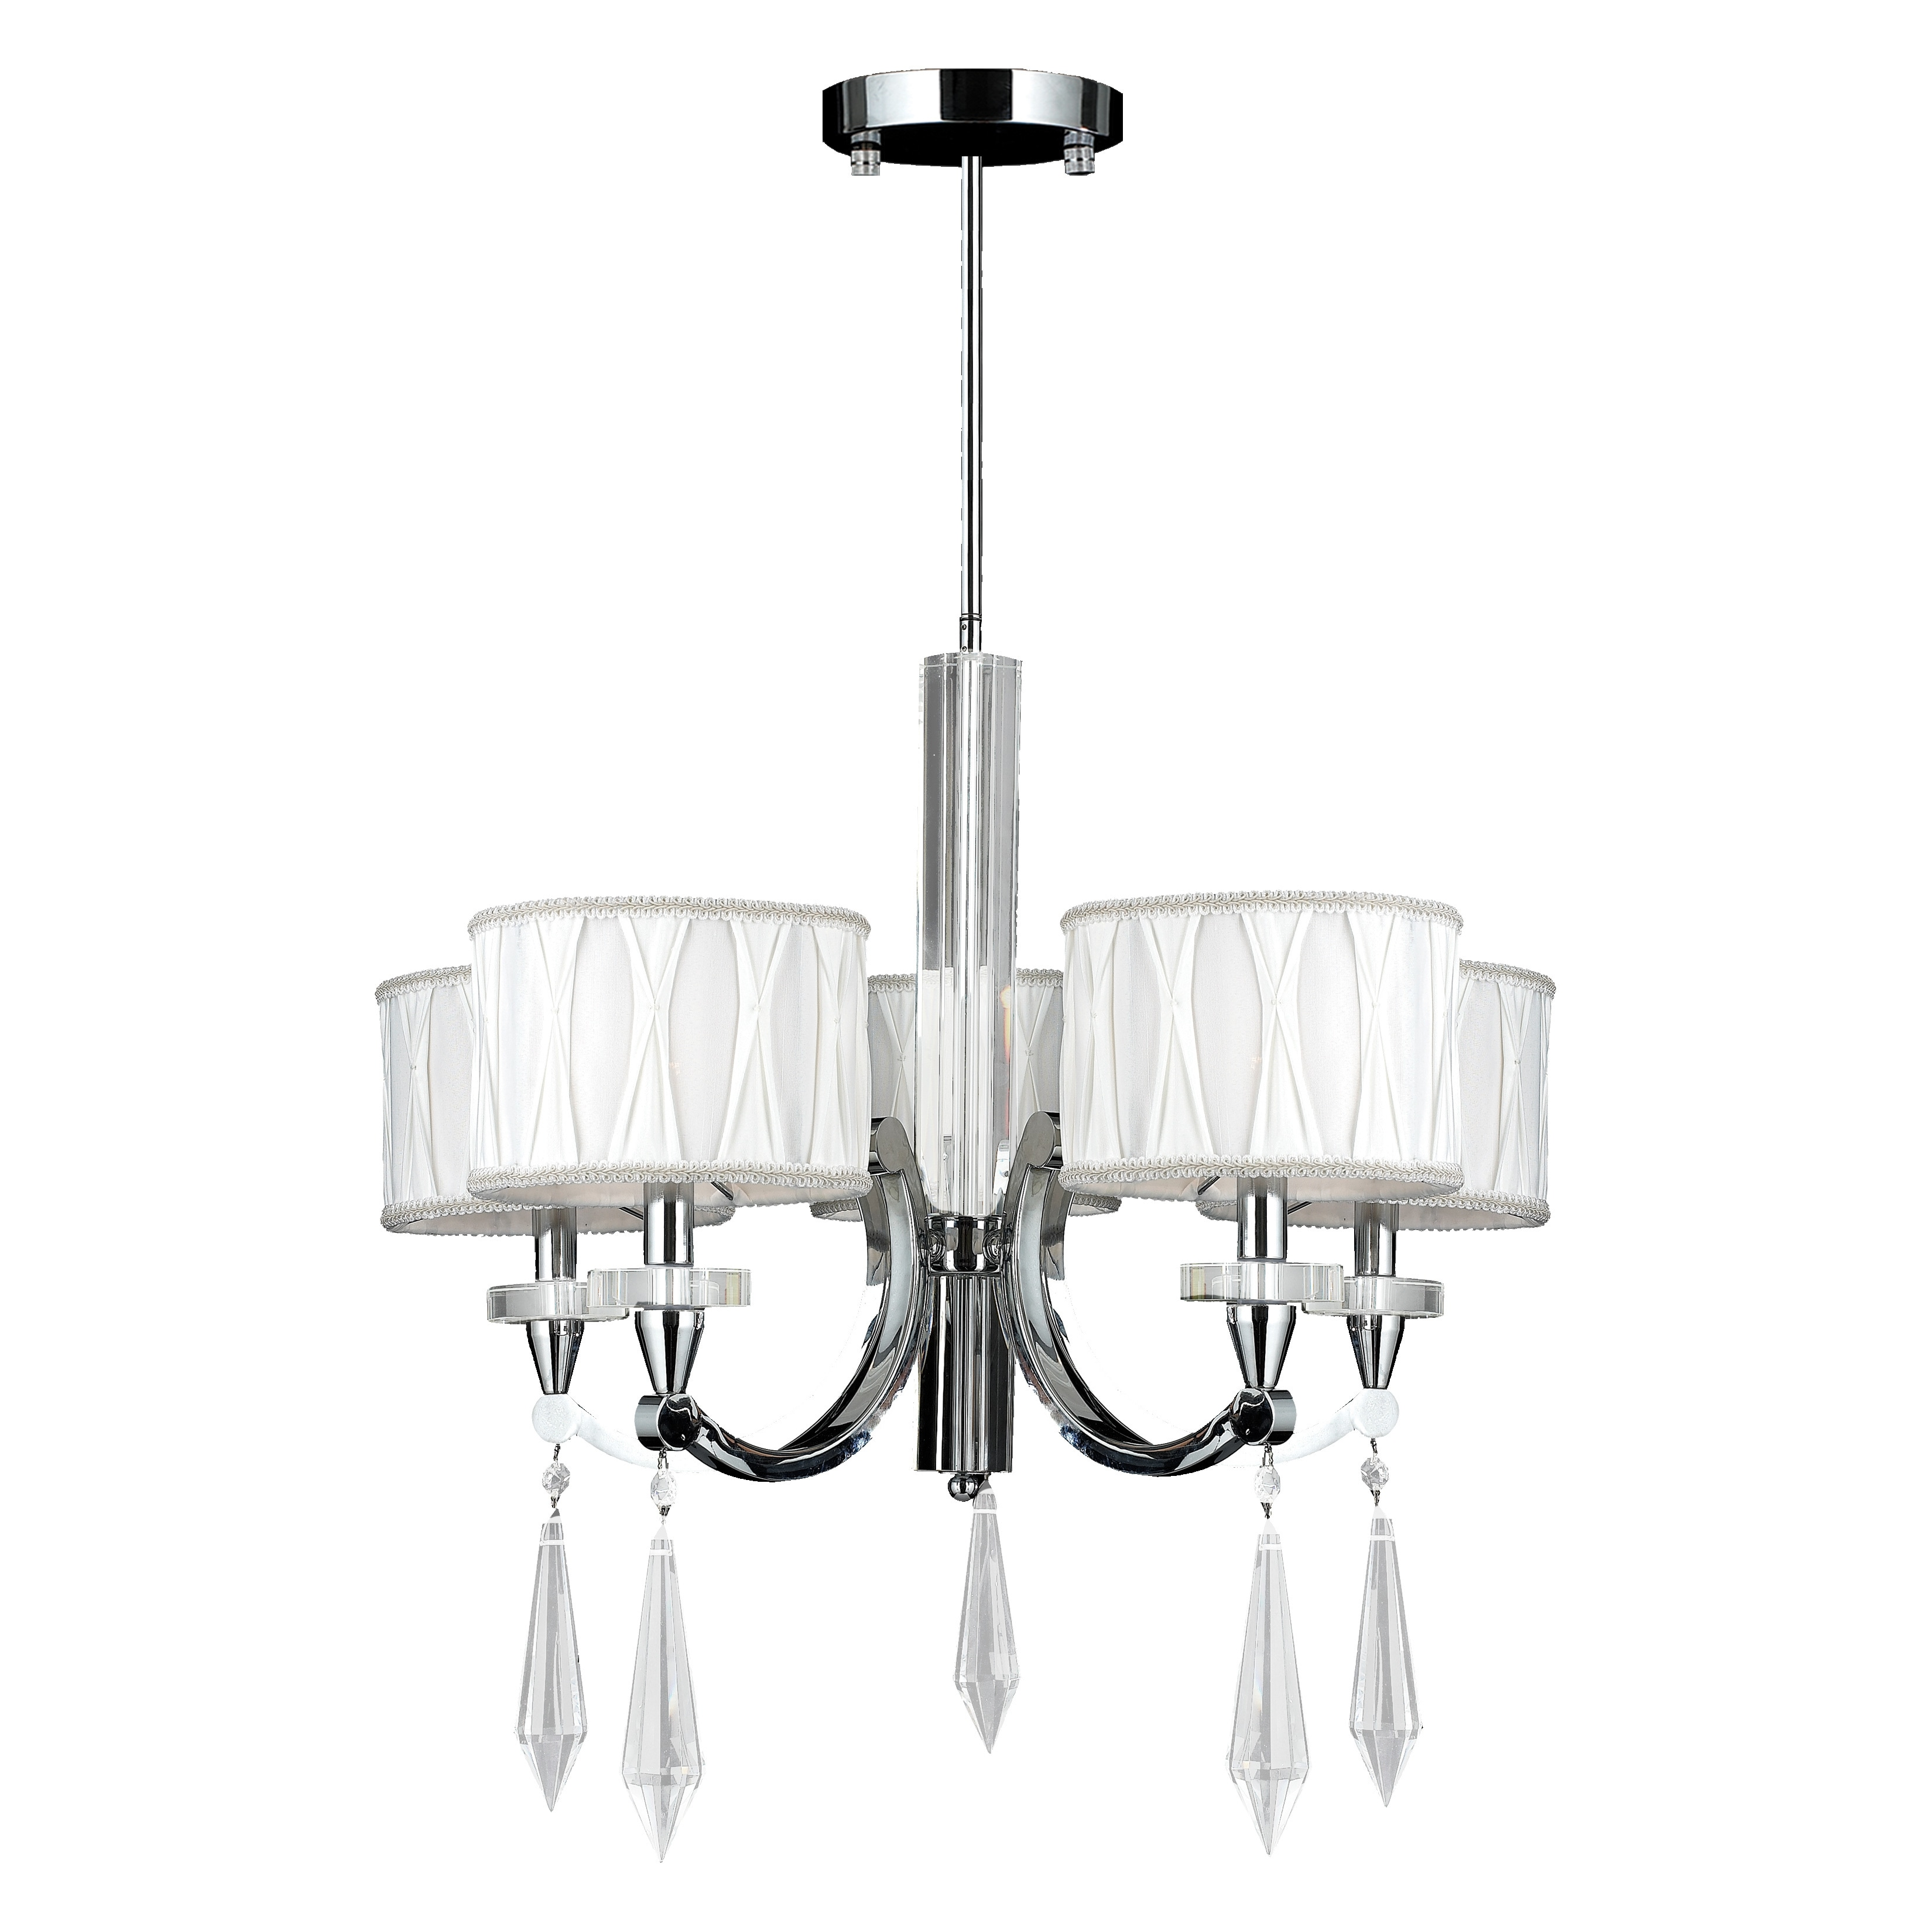 Cutlass 5 Light Arm Chrome Finish Clear Crystal Large Chandelier White Fabric Shade Free Today Com 10163171